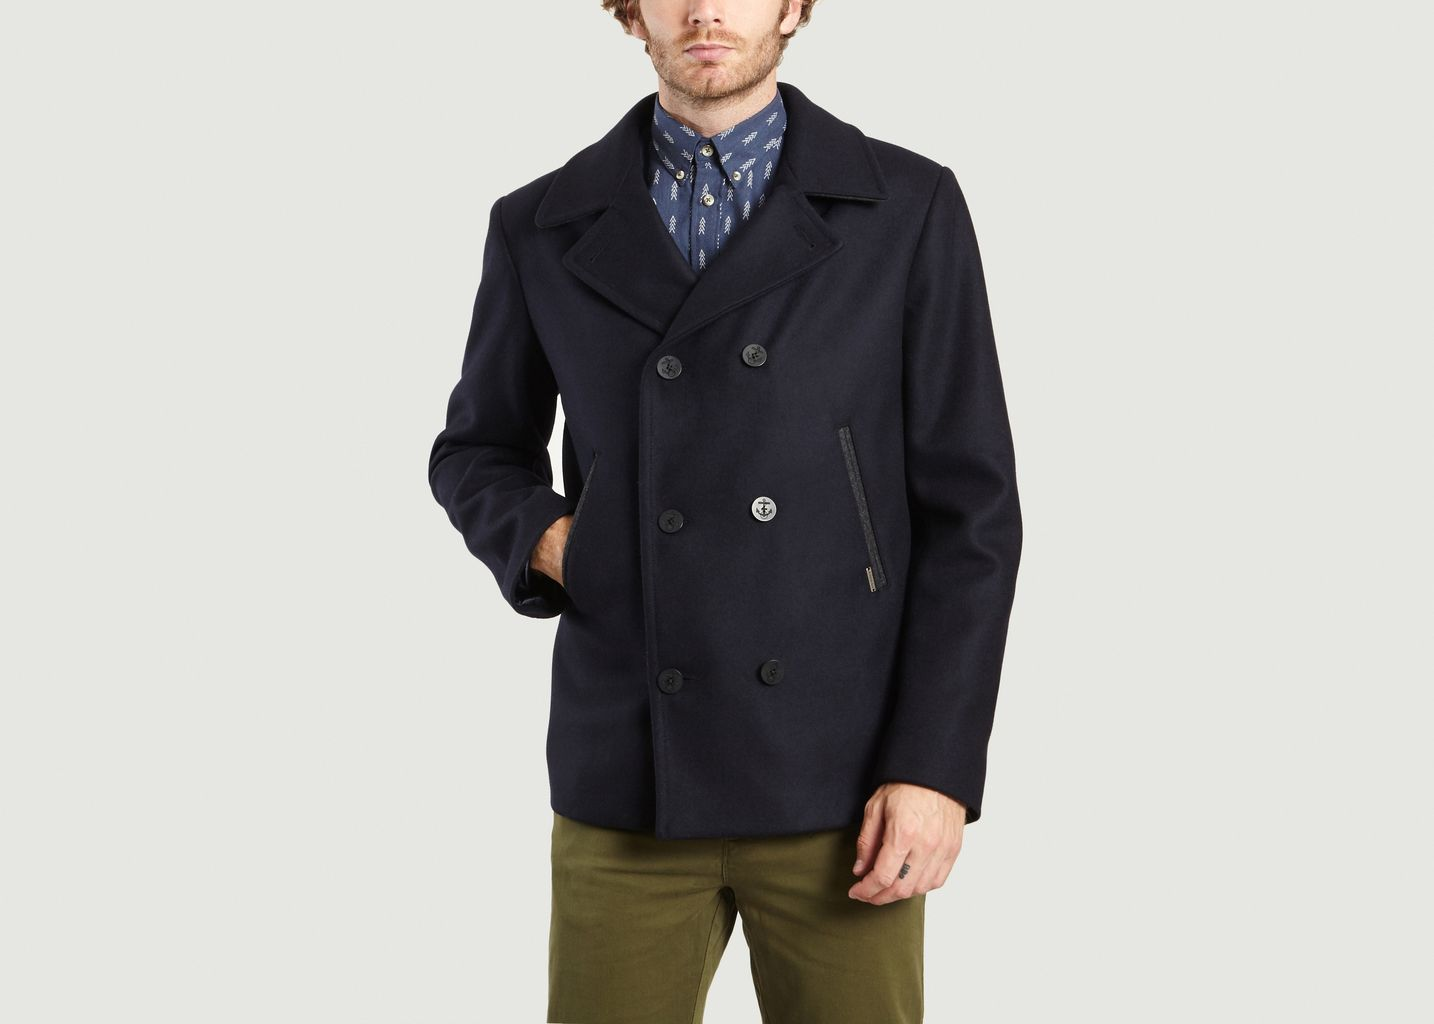 hot products fashion style offer discounts Wool Pea Coat